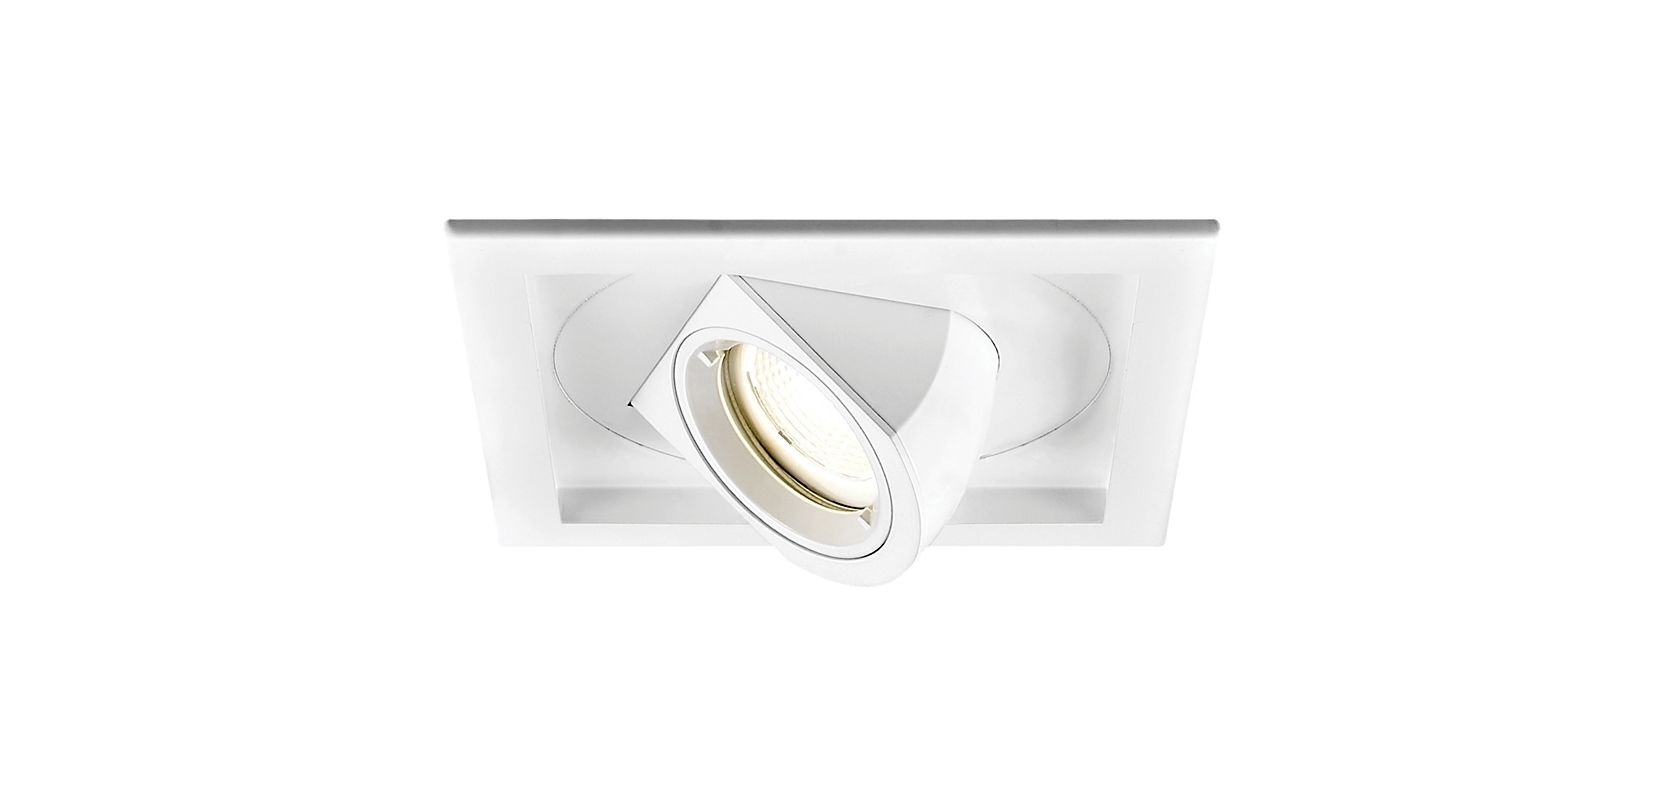 "WAC Lighting MT-5LD125T-S35 6"" 3500K High Output LED Recessed Light"